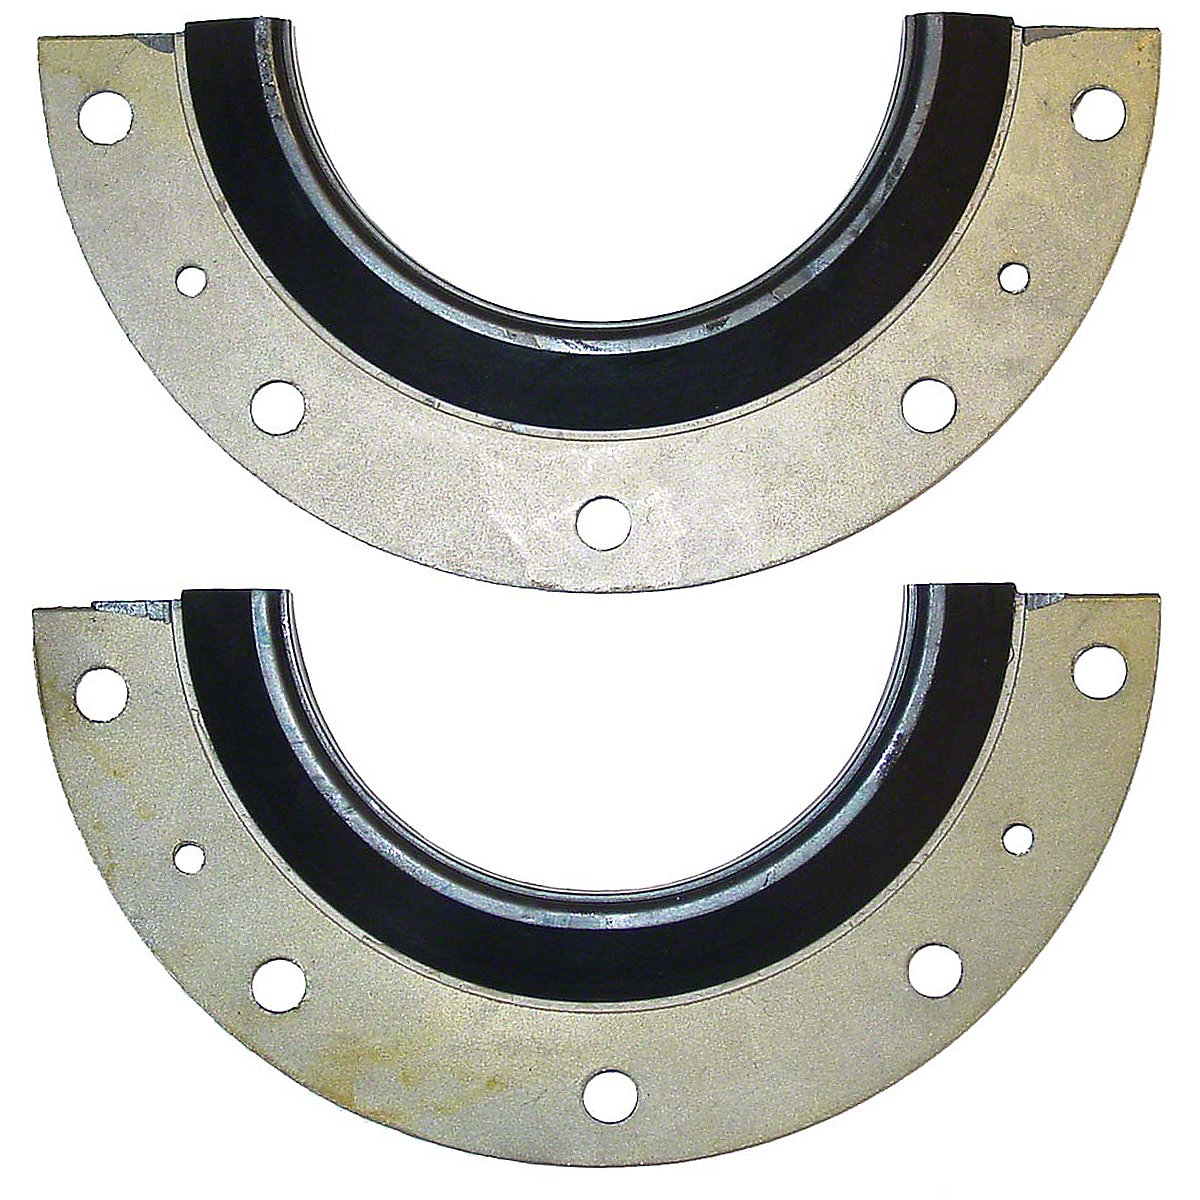 Rear Main Seal For Massey Harris: 44, 44 Special, 55, 444, 555, Workbull 404, Massey Ferguson: 85, 88.